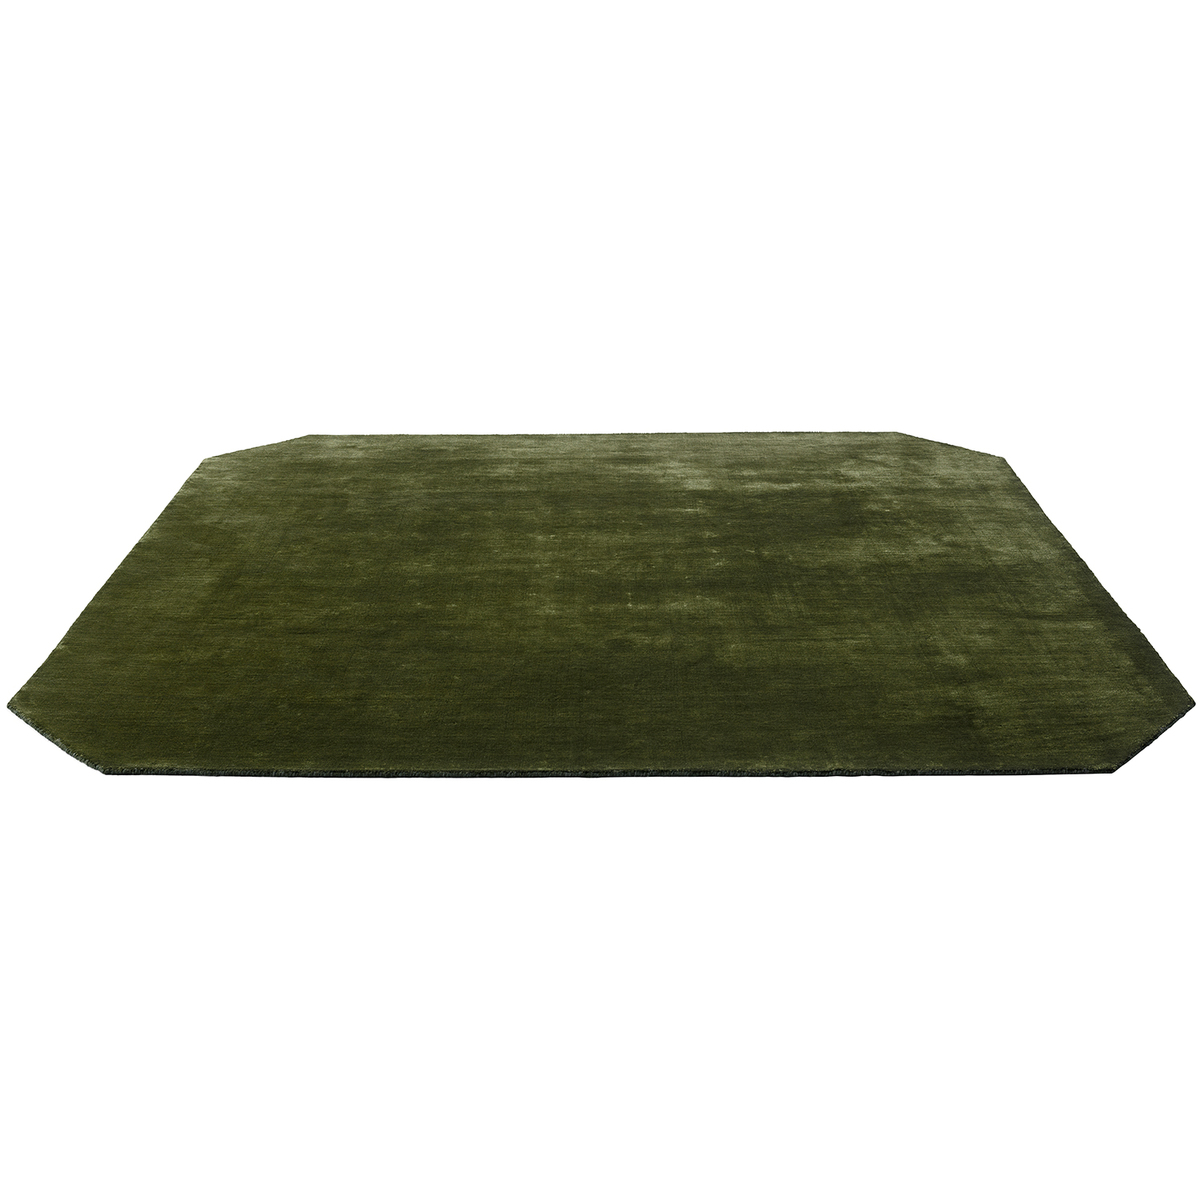 &Tradition The Moor rug AP8, 300 x 300 cm, green pine from &Tradition